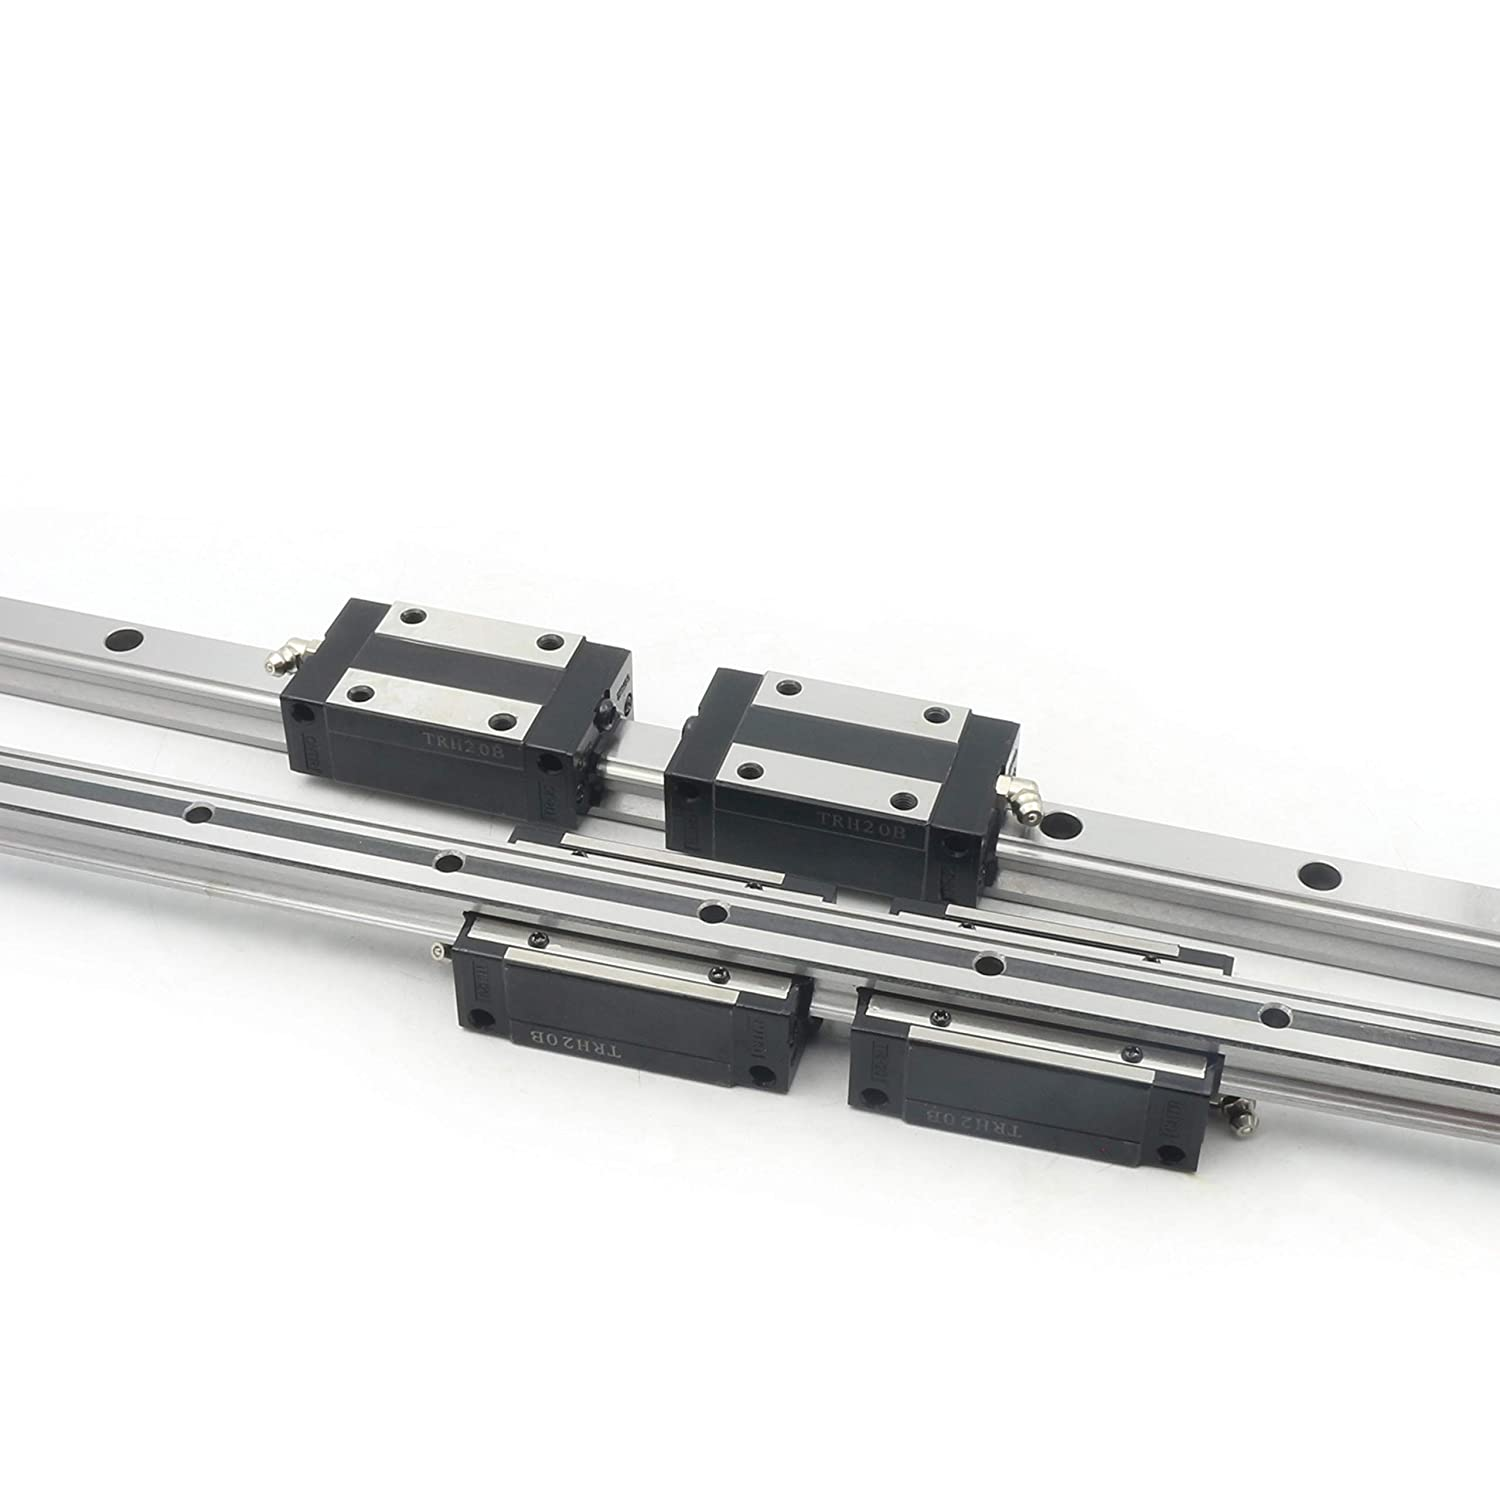 20mm Square Linear Guide Rail L800mm with 2pcs Slider Carriage Block CNC Router